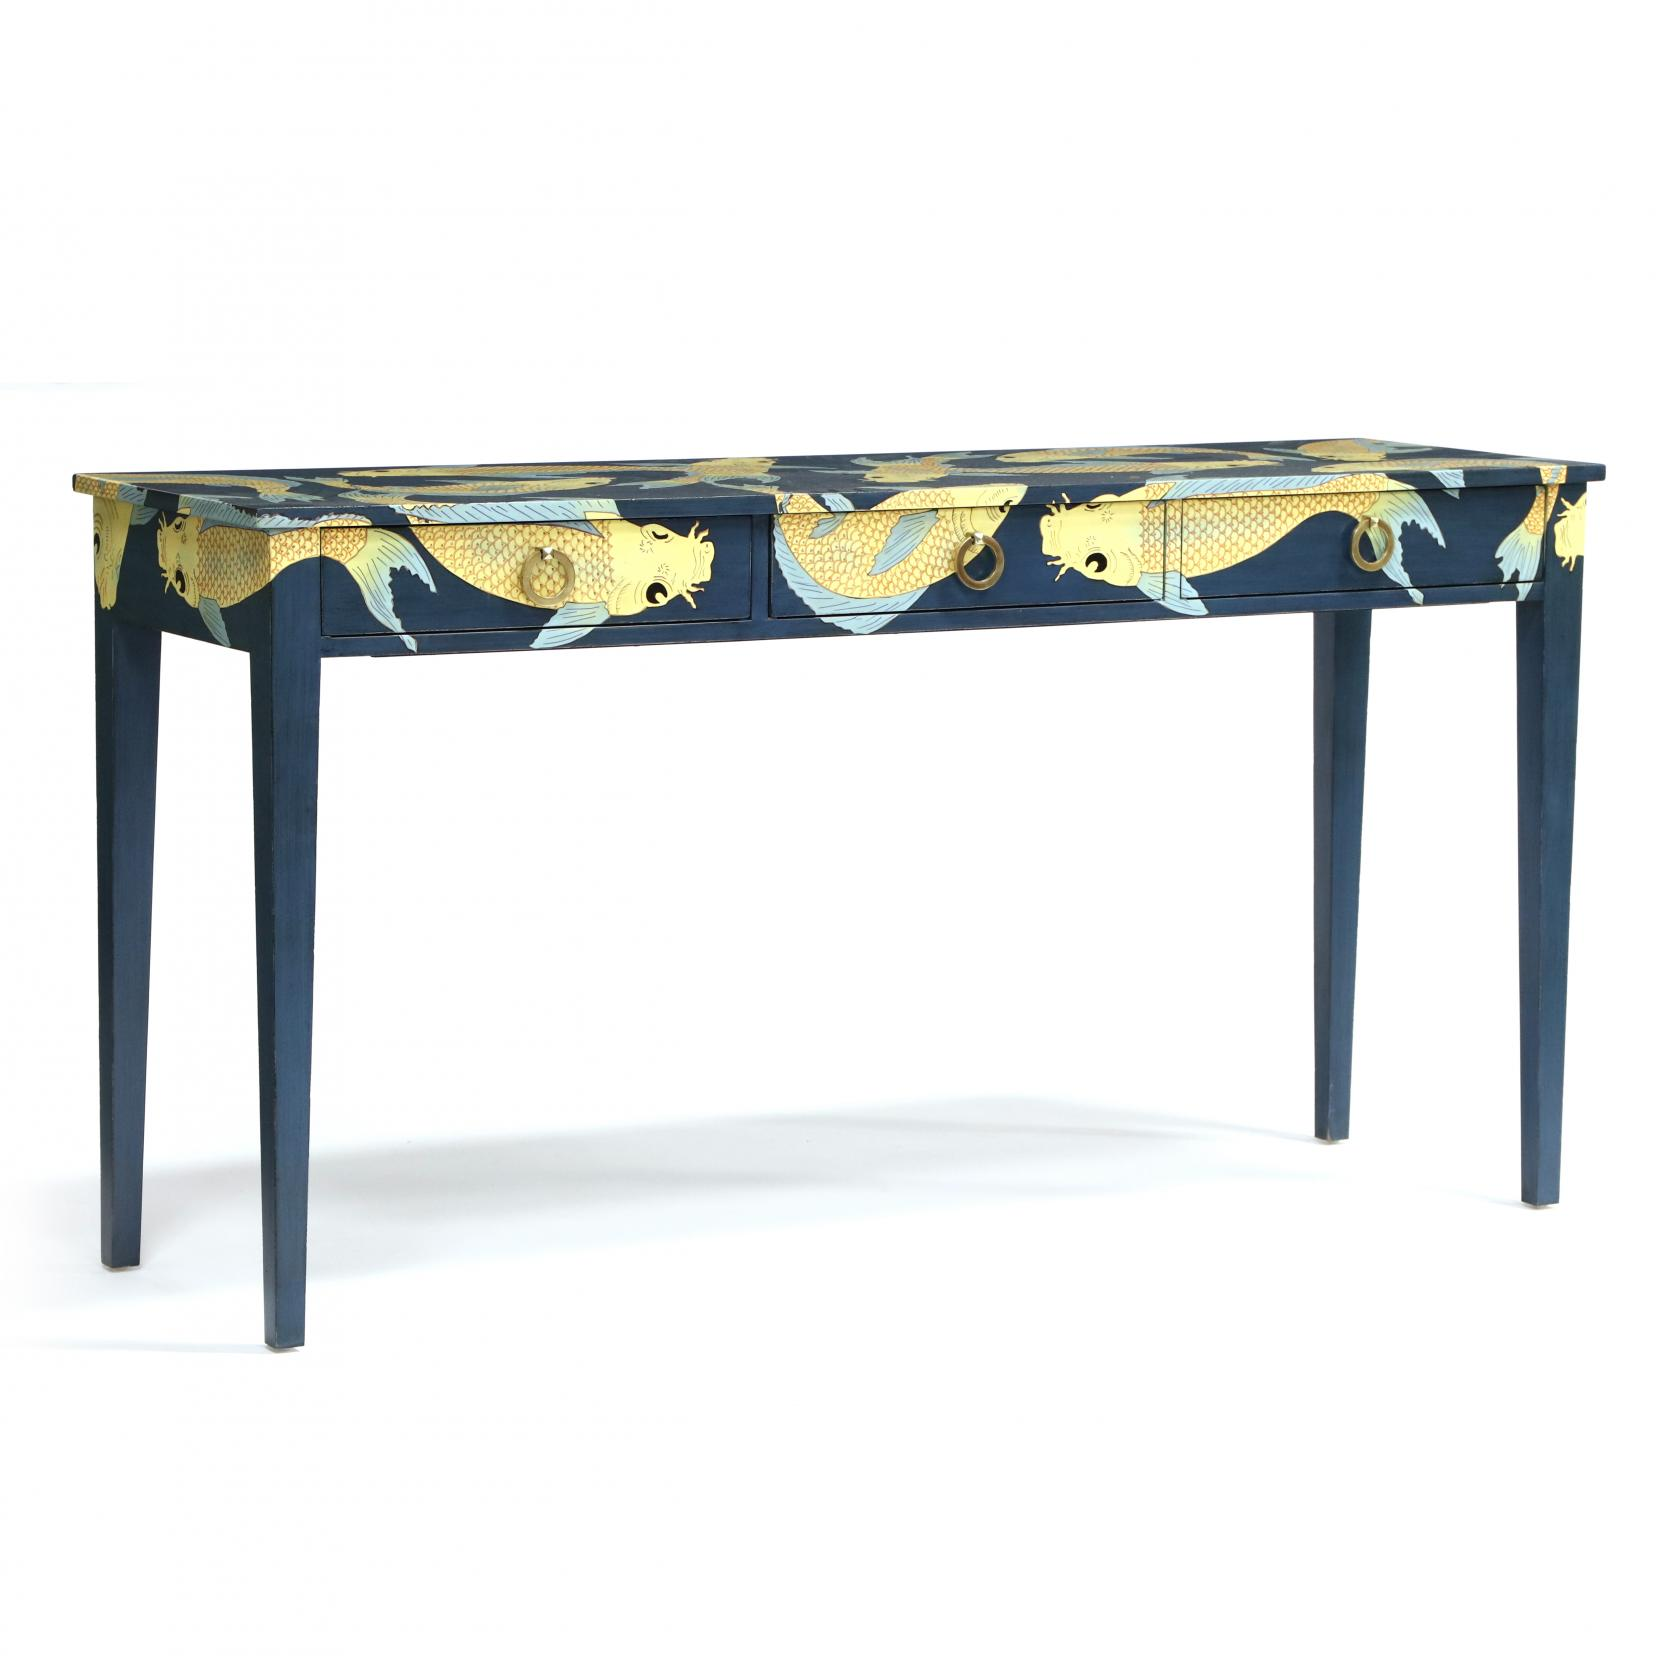 somerset-bay-koi-fish-console-table